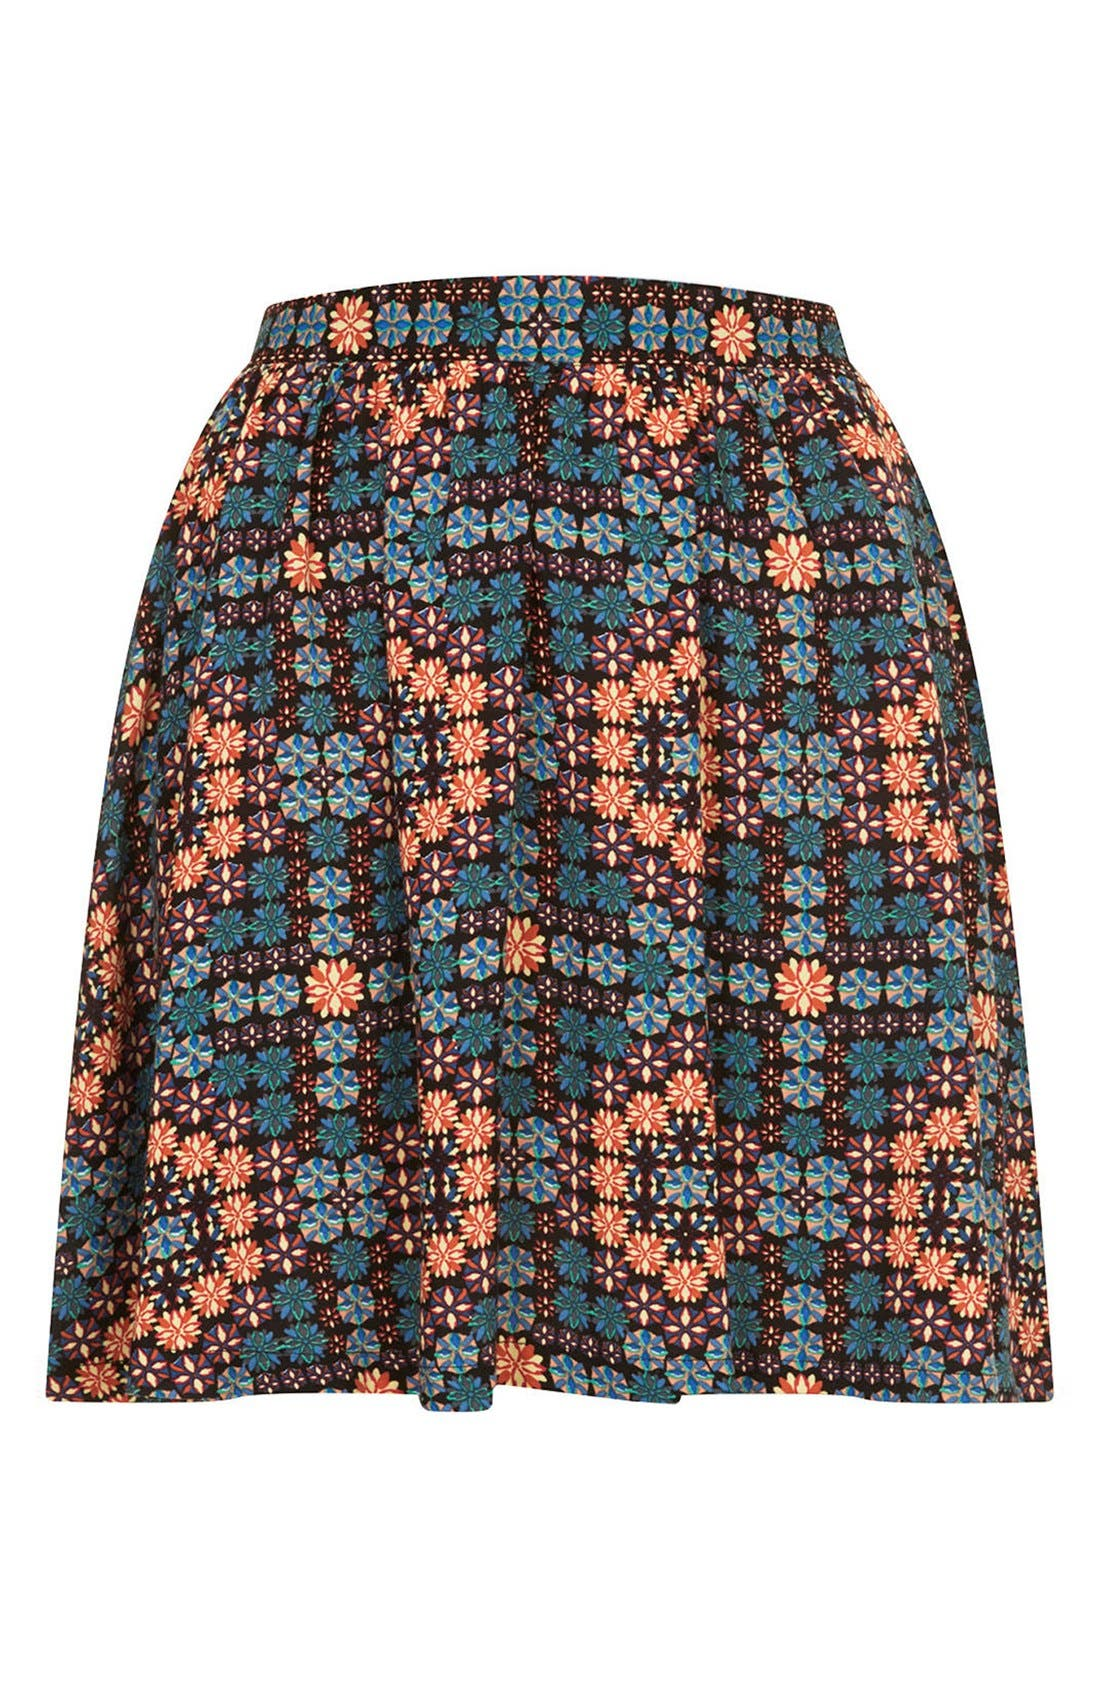 Alternate Image 3  - Topshop 'Milly' Tile Print Skirt